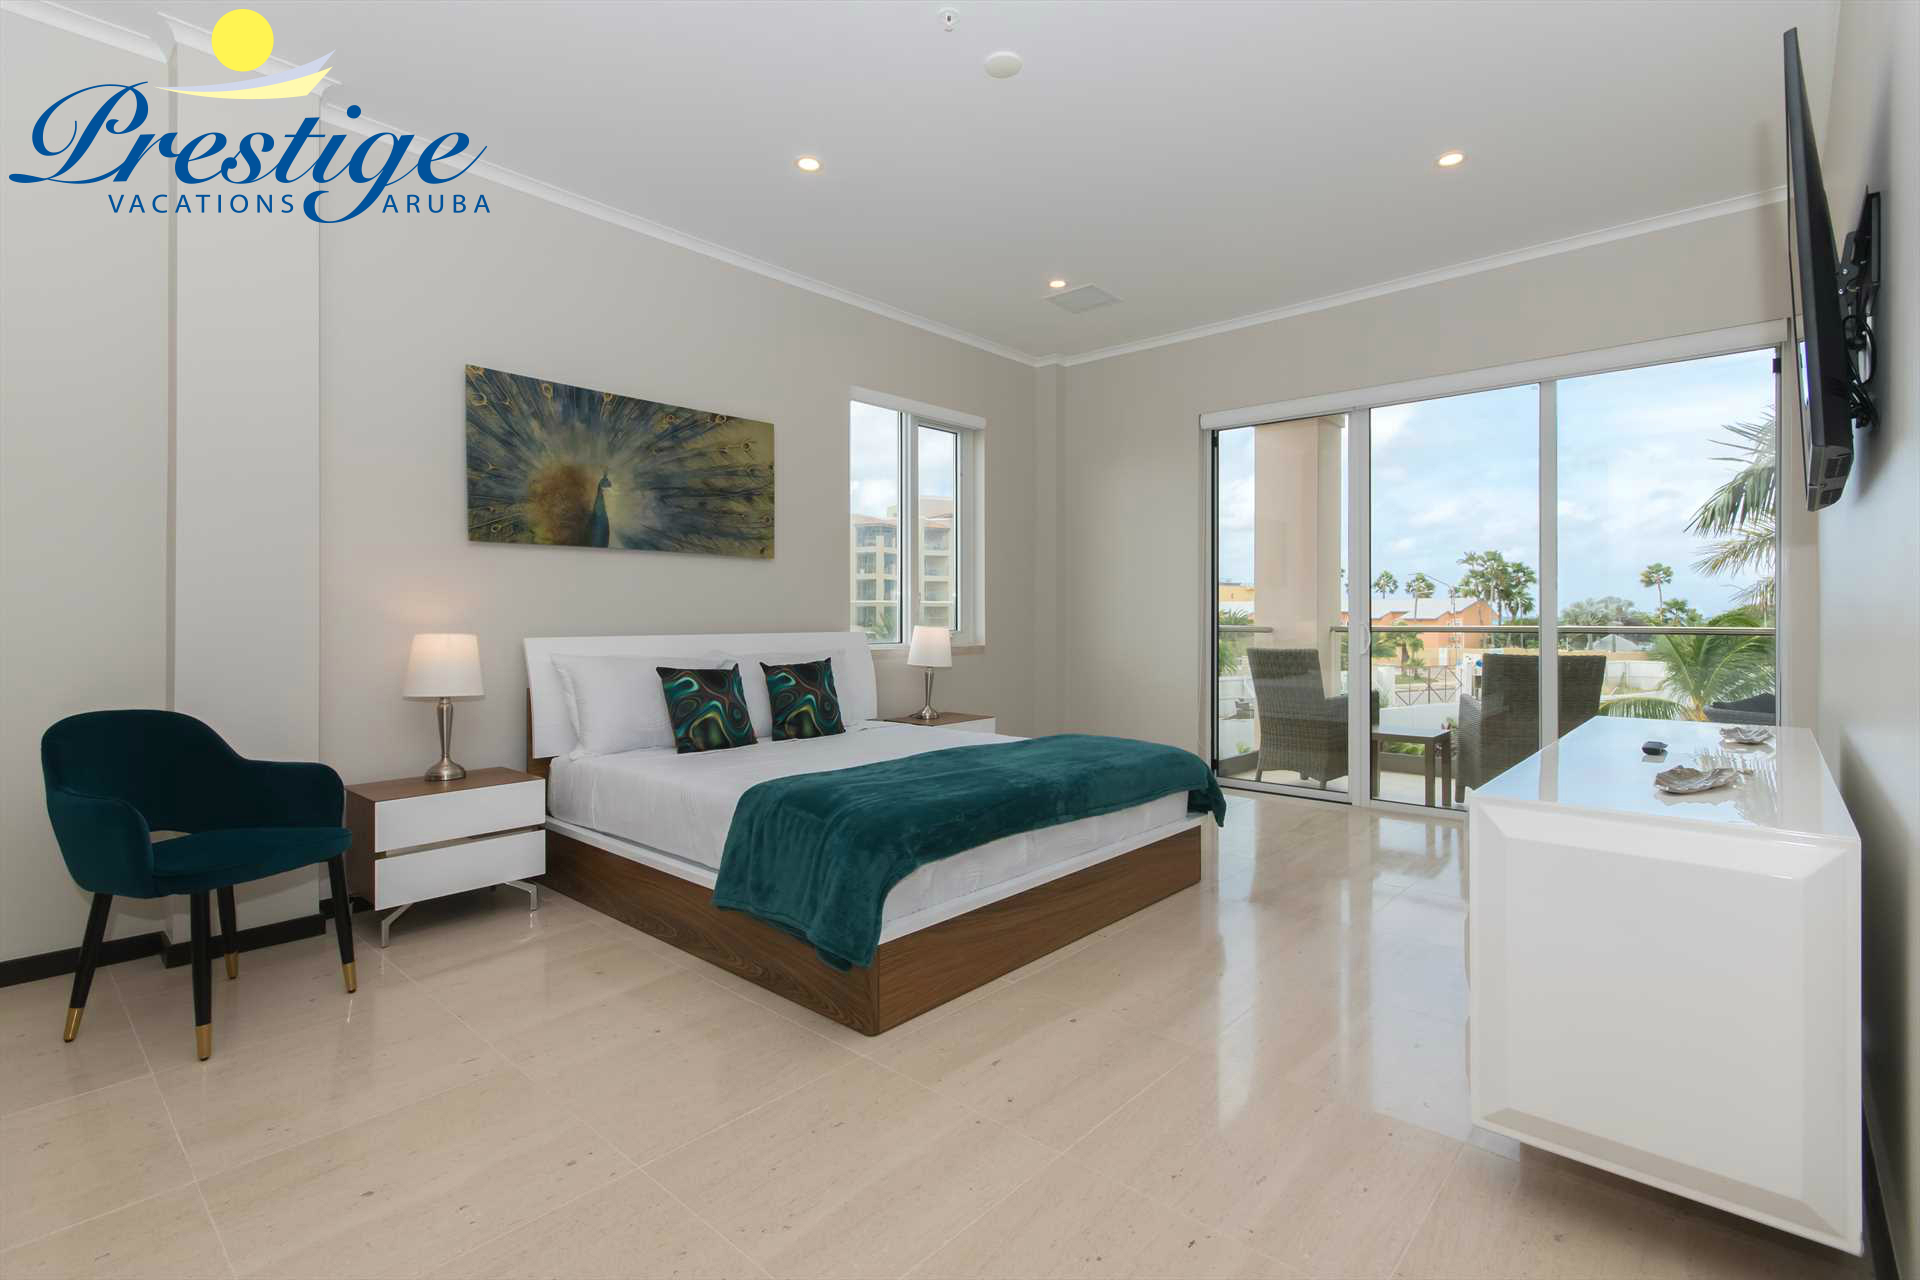 The master bedroom with a king-size bed, a TV and access to the balcony